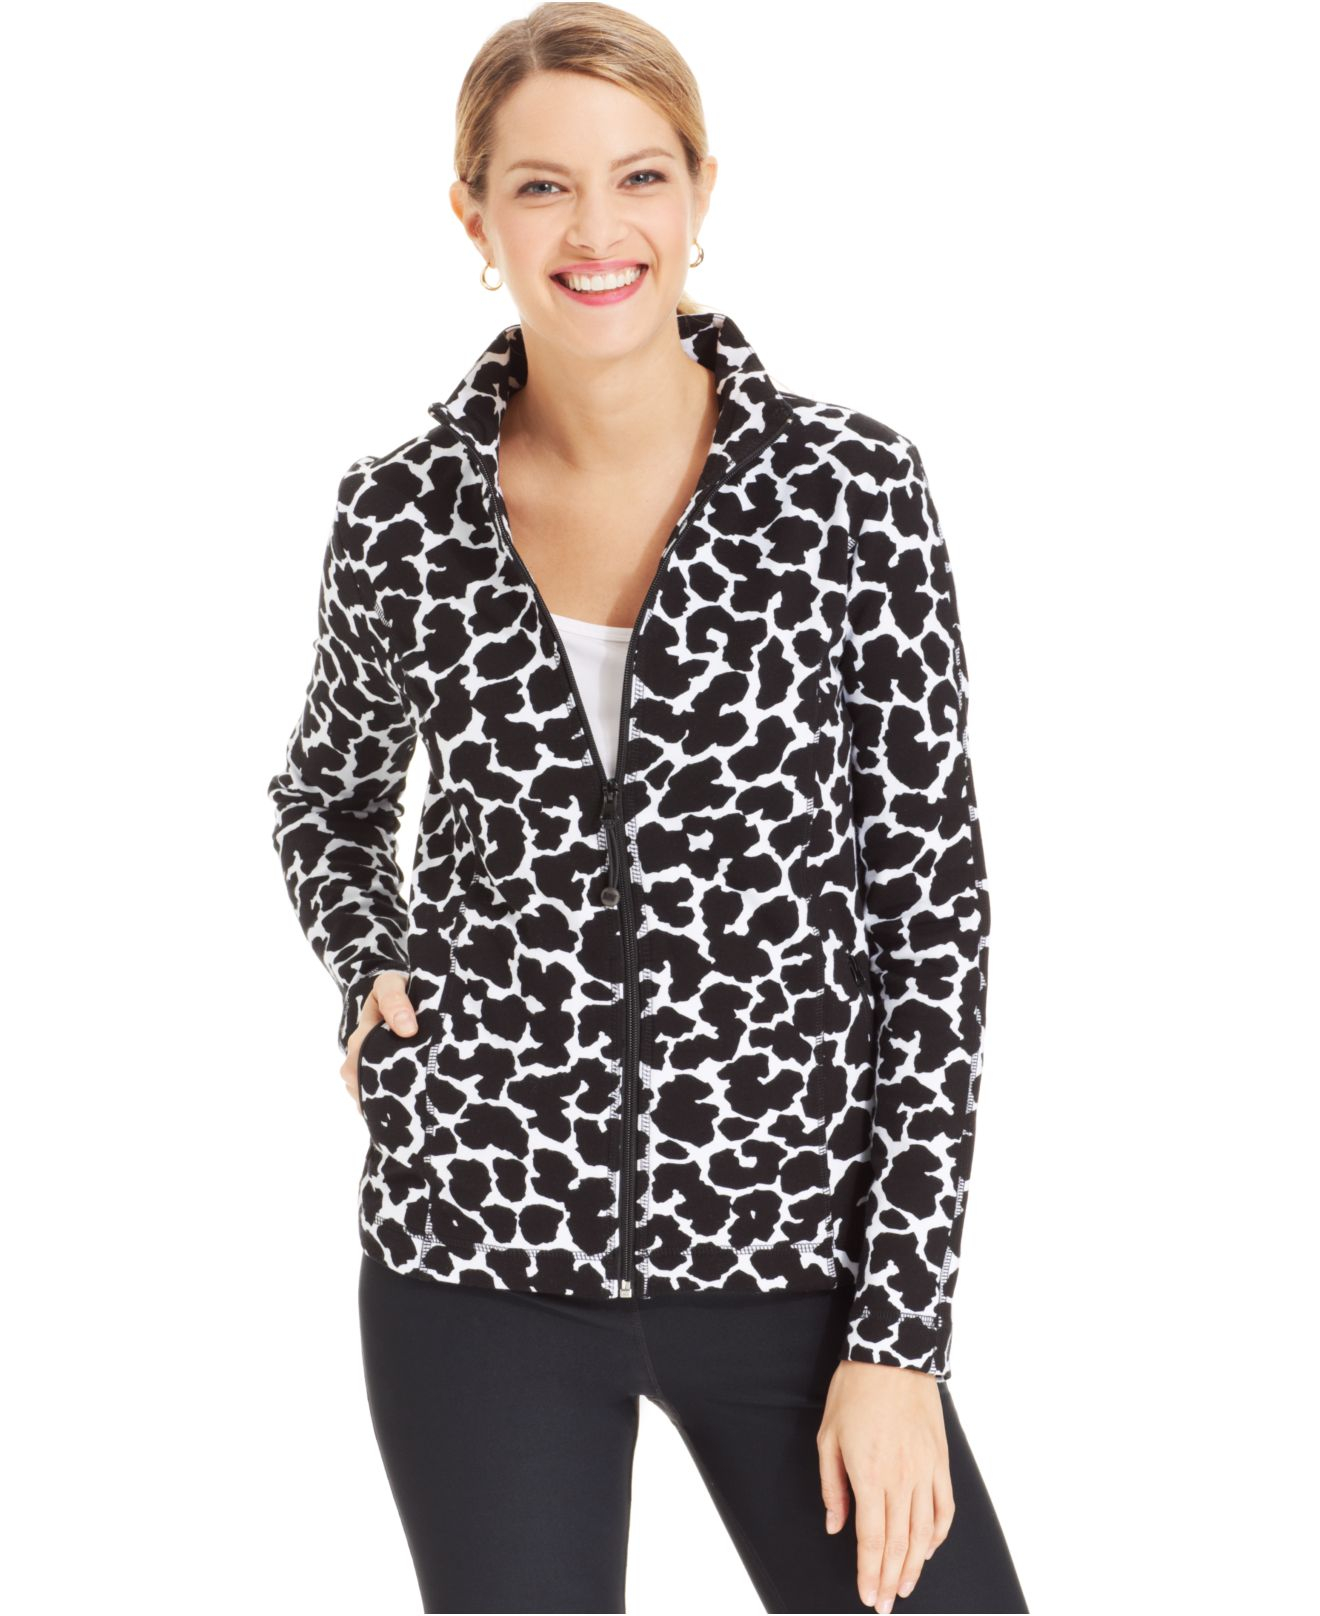 Jones New York Women's Workwear, Suits & Office Attire | Dillard'sFree Shipping over $ · Buy Online Return Instore · Find A Store Near You · Style Since Styles: Women's Dresses, Women's Work Wear, Women's Shoes.